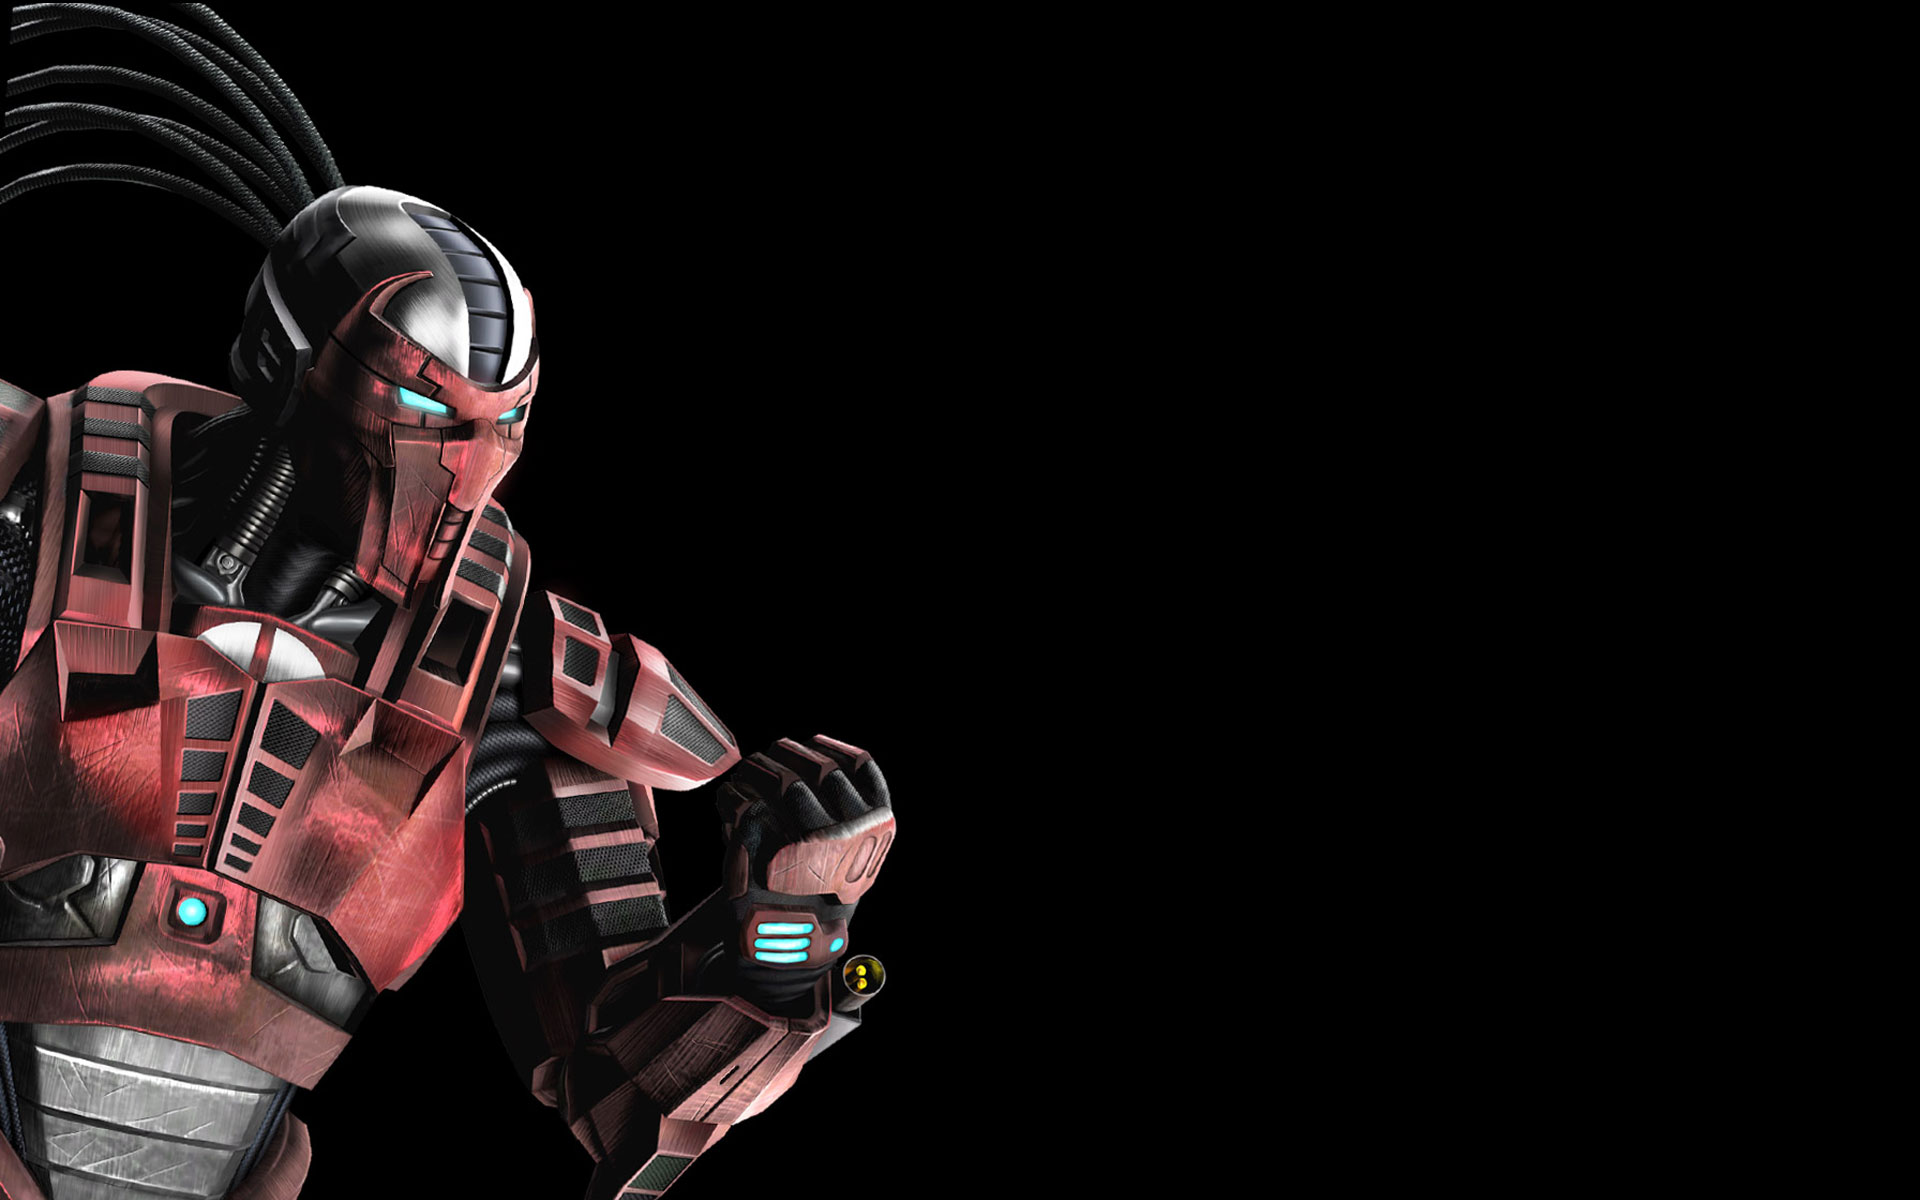 download Games Wallpapers Mortal Kombat 9 Sektor wallpaper 1920x1200